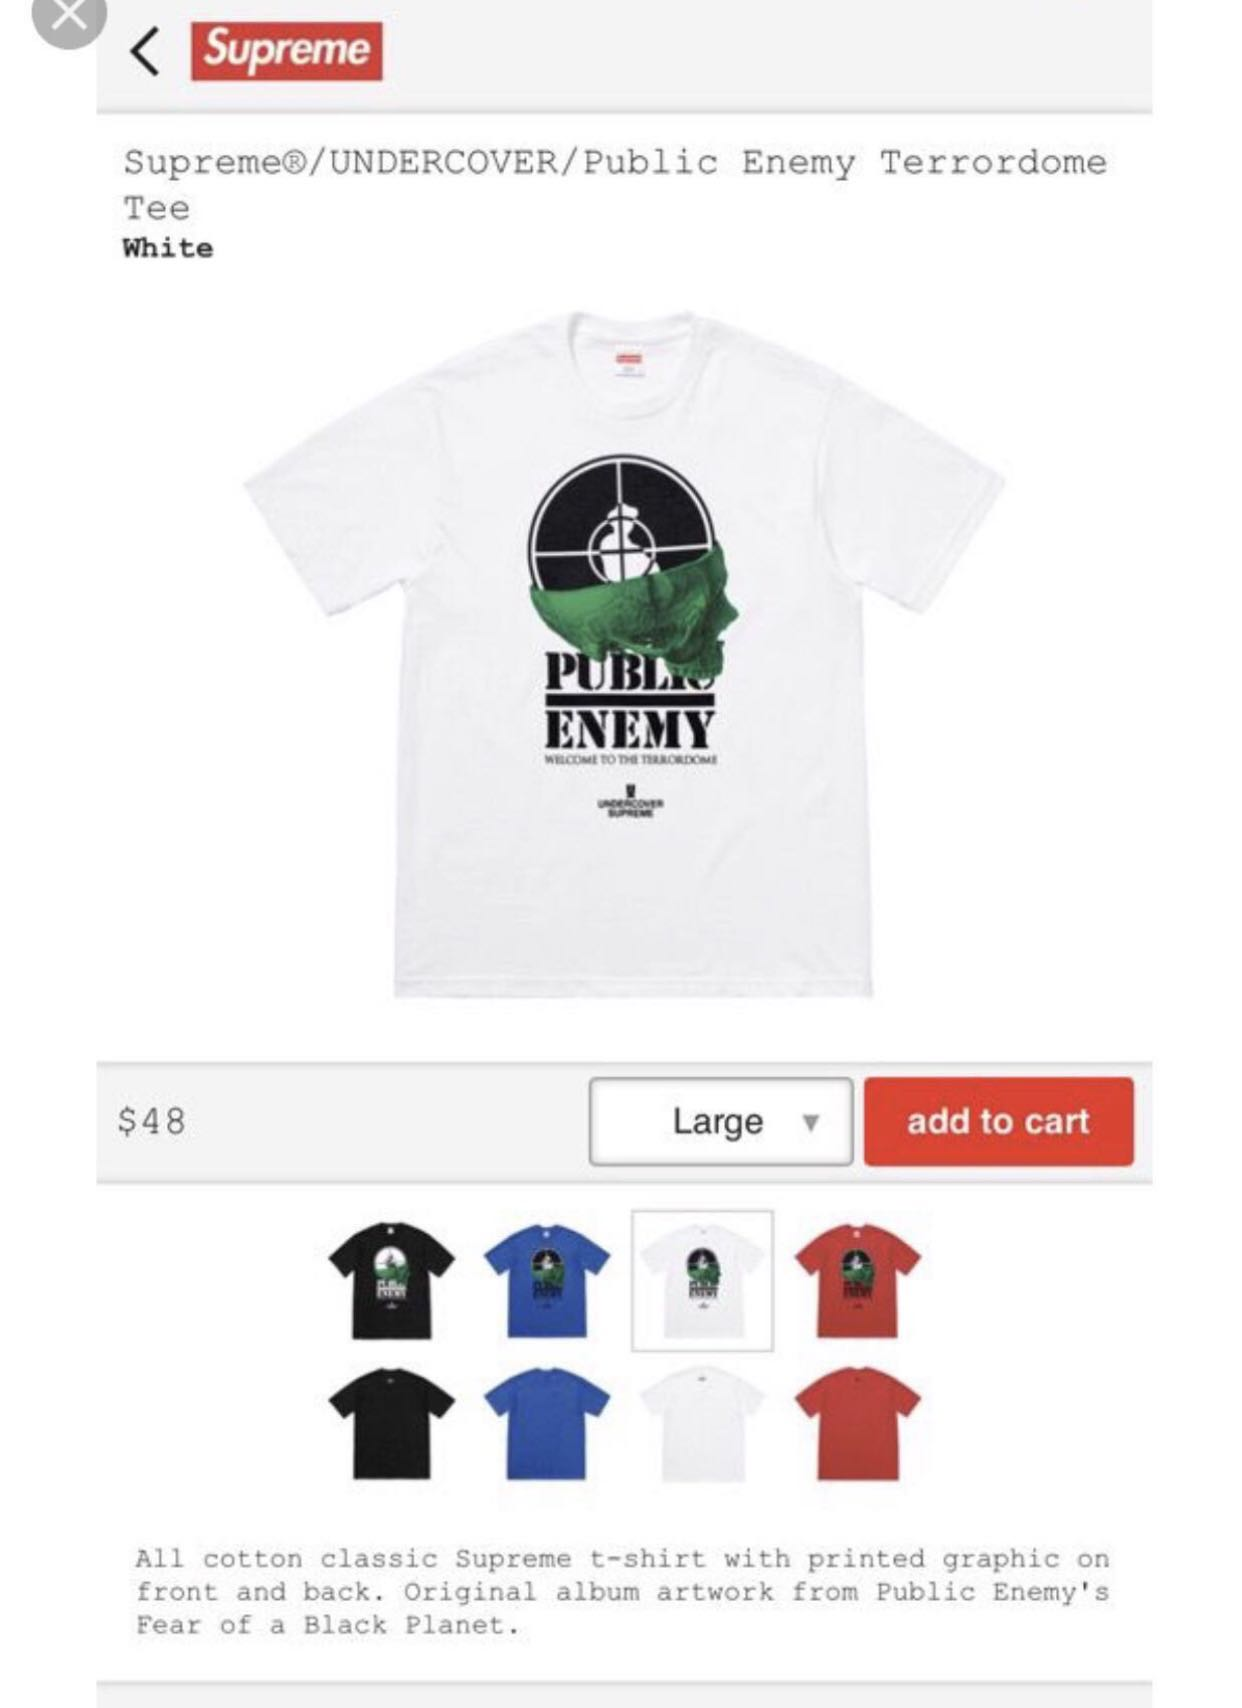 01baf840dfd4 Supreme Undercover Public Enemy Terrordome Tee Shirt, Men's Fashion, Clothes,  Tops on Carousell